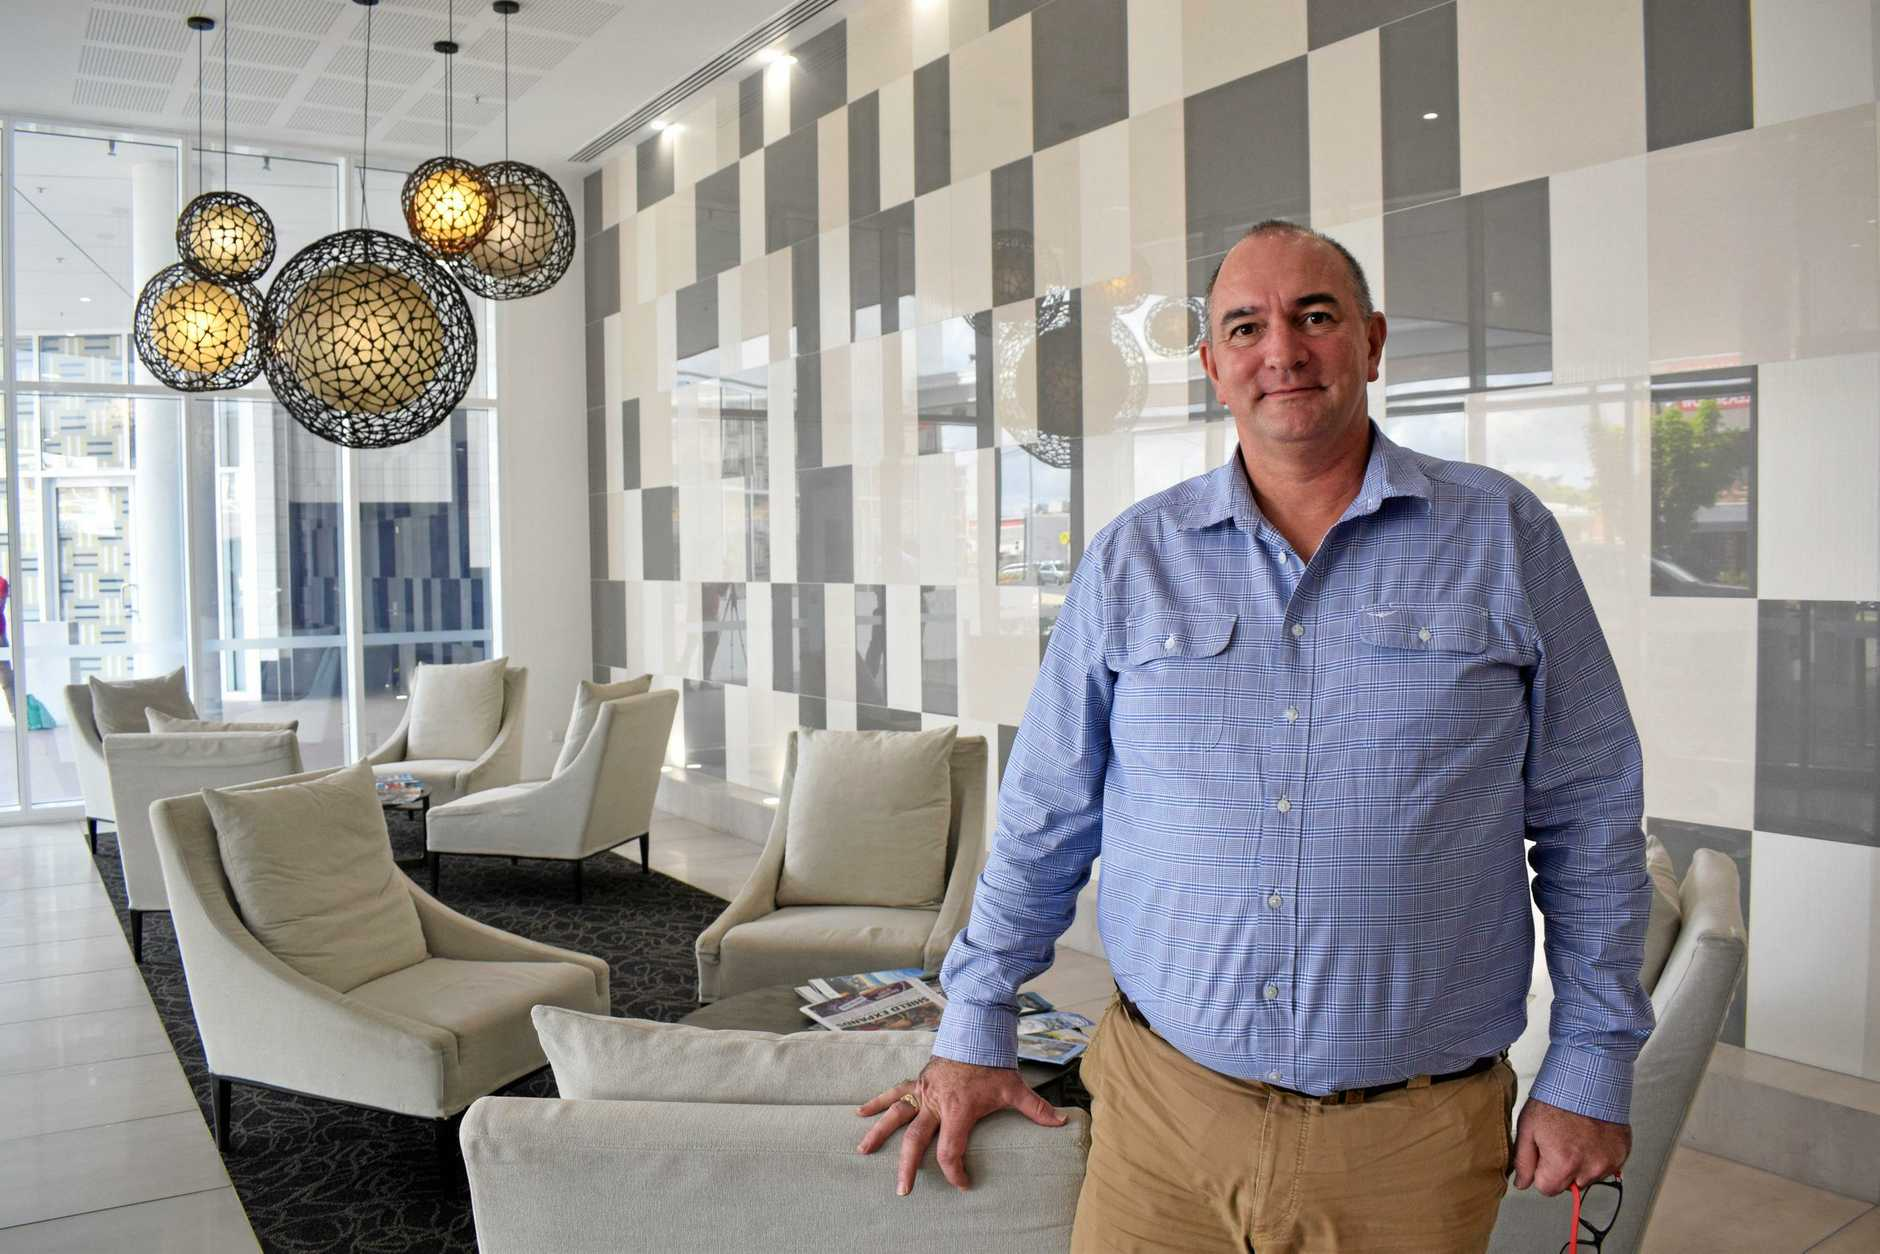 POLICY SUPPORT: Managing director of Cassidy Hospitality Group Grant Cassidy applauded Labor's plan to level the playing field for hotels competing against major online booking platforms.